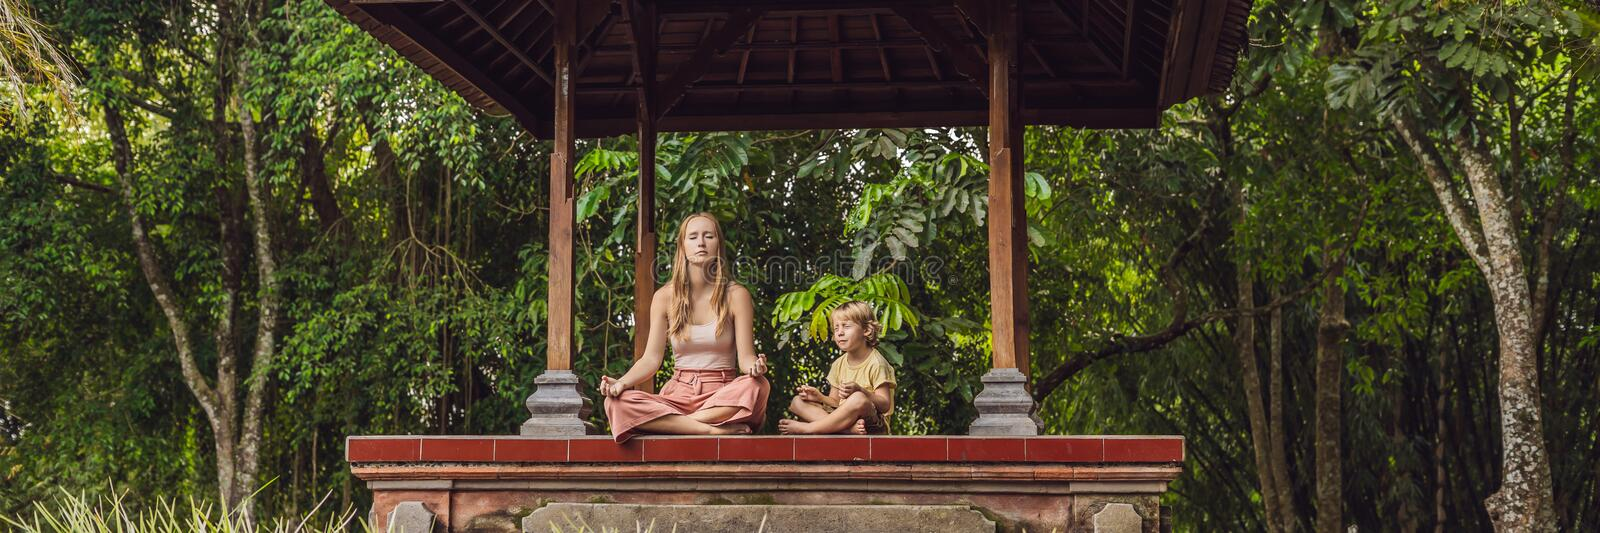 Mom and son meditate practicing yoga in the traditional balinesse gazebo BANNER, long format. Mom and son meditate practicing yoga in the traditional balinesse royalty free stock photos